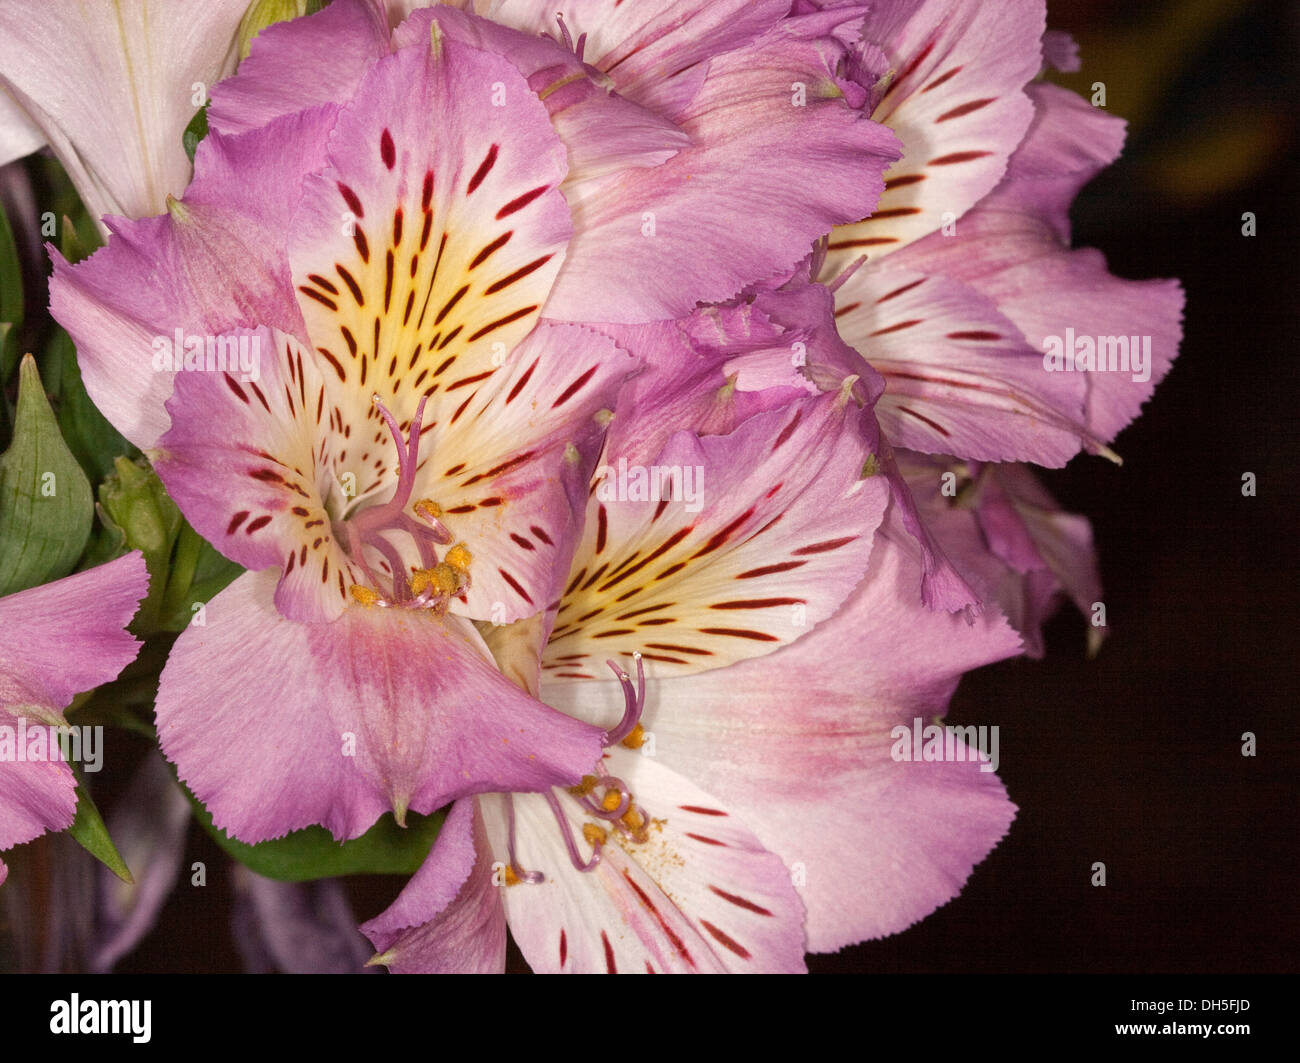 Cluster Of Mauve And White Flowers Of Alstroemeria Peruvian Stock